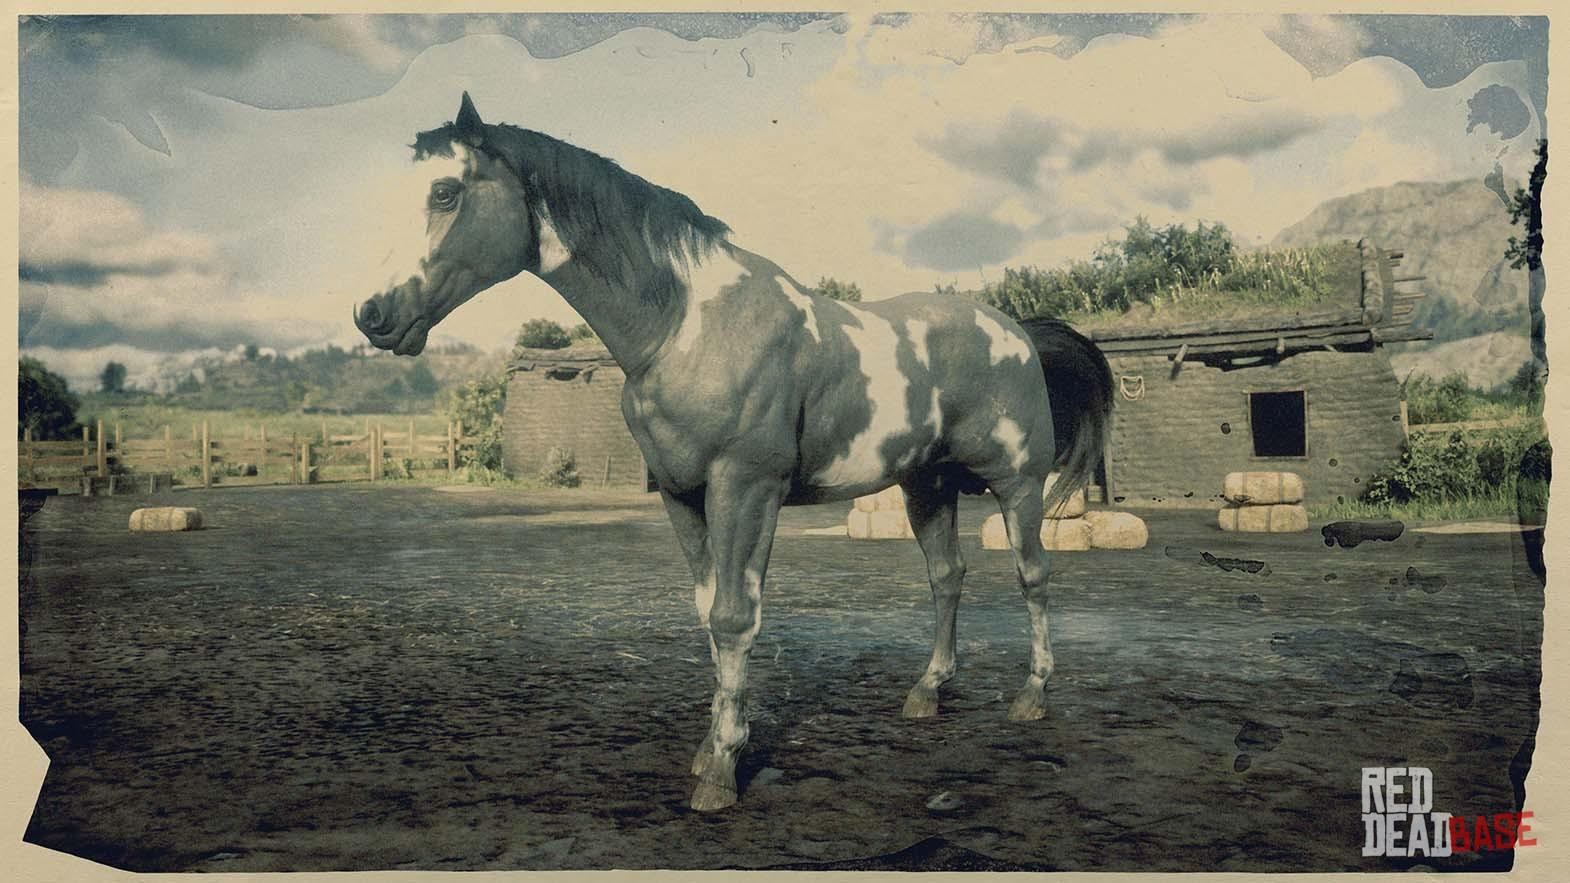 American Paint Horse Red Dead Redemption 2 Horse Breeds Guide Red Dead Redemption 2 Animals Species Wildlife Database Red Dead Redemption 2